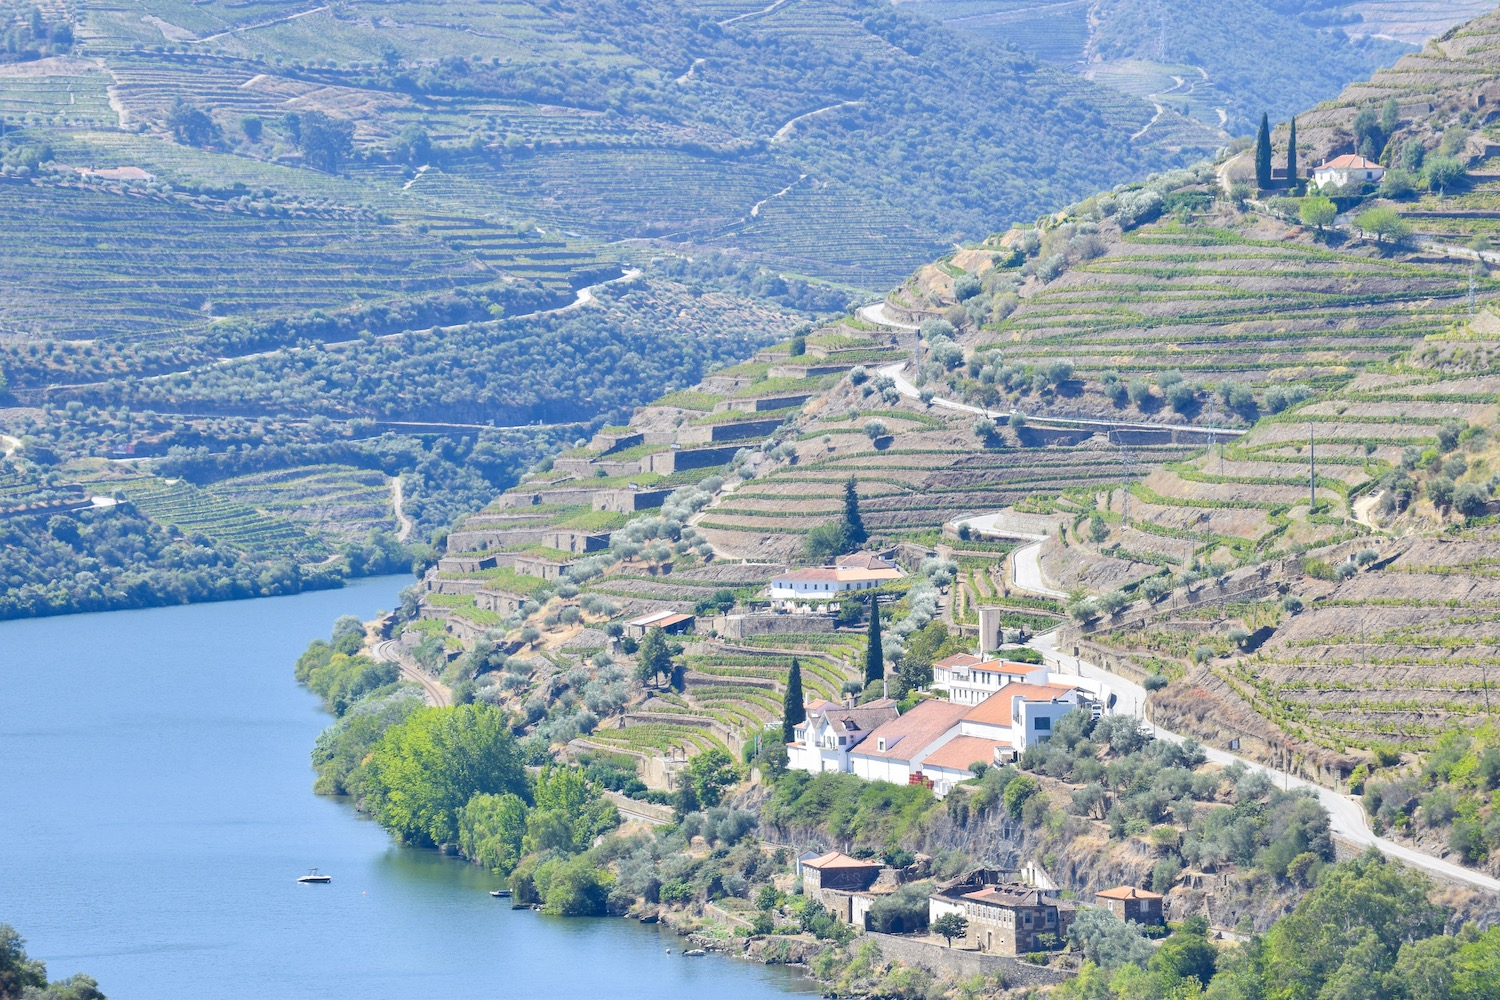 Vineyards-douro-valley.JPG